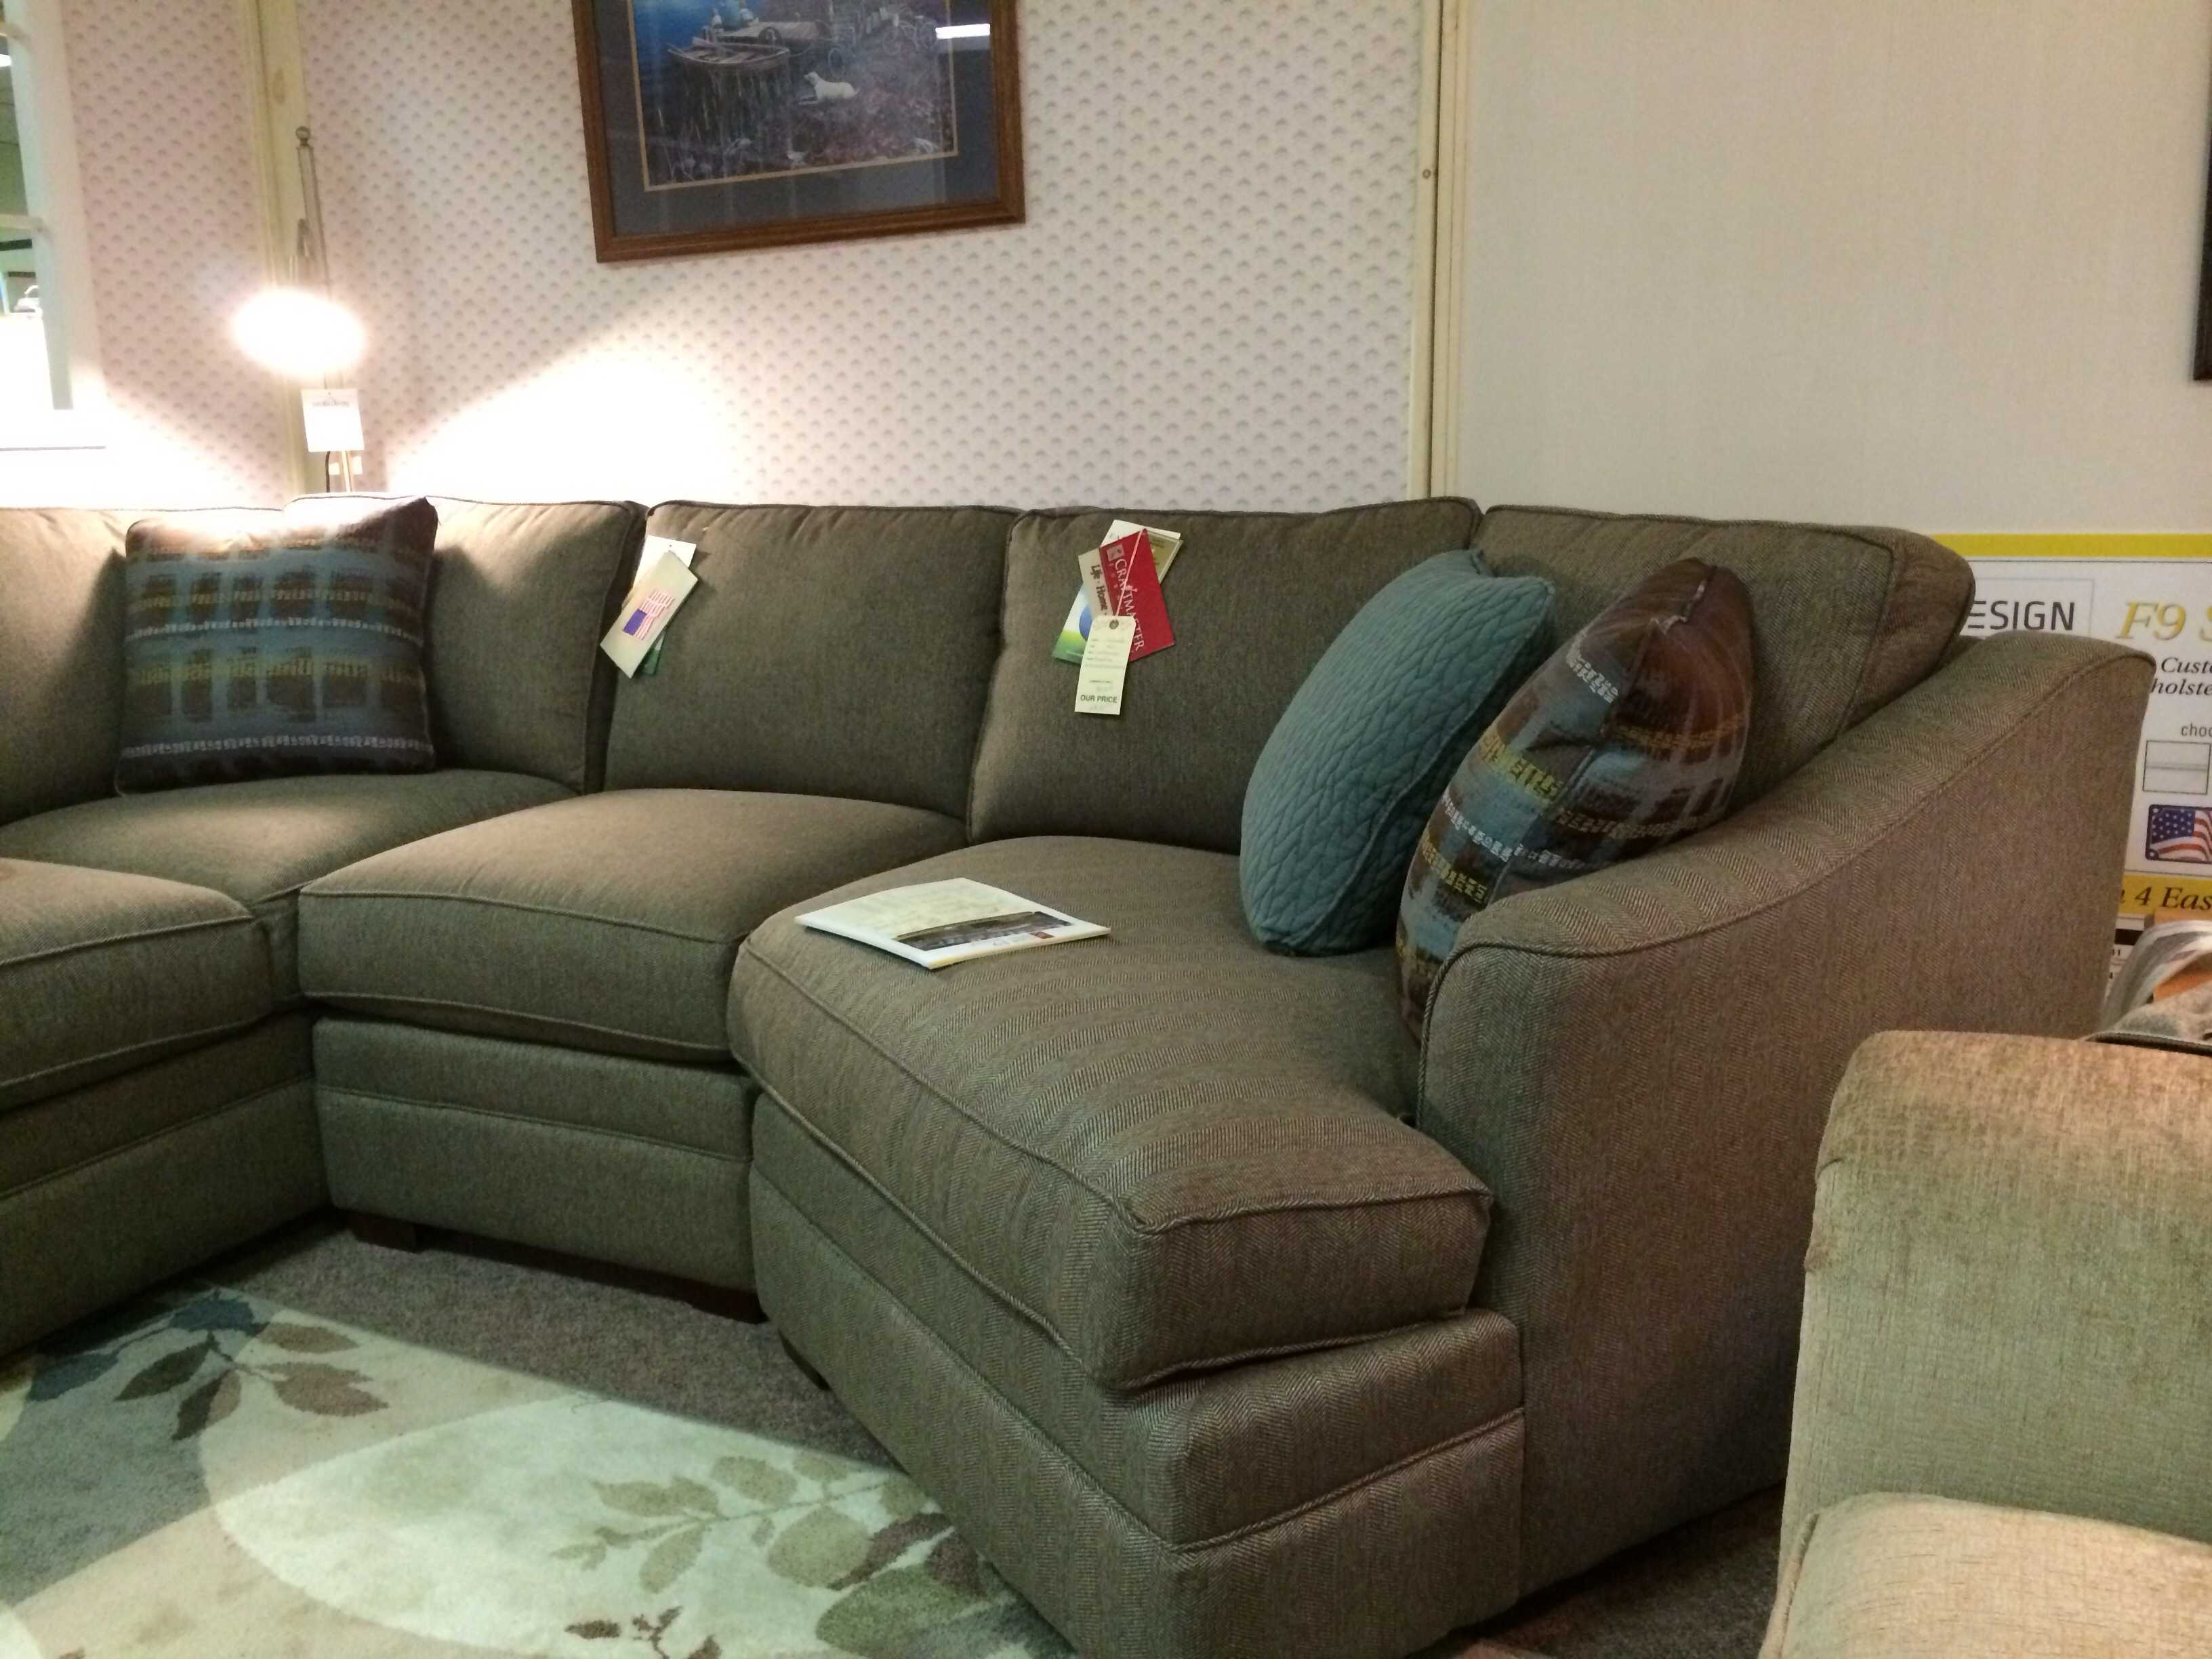 Awesome Sectional Sofa With Cuddler Chaise Also Ideas ~ Eduquin In Sectional Sofas With Cuddler Chaise (View 10 of 10)